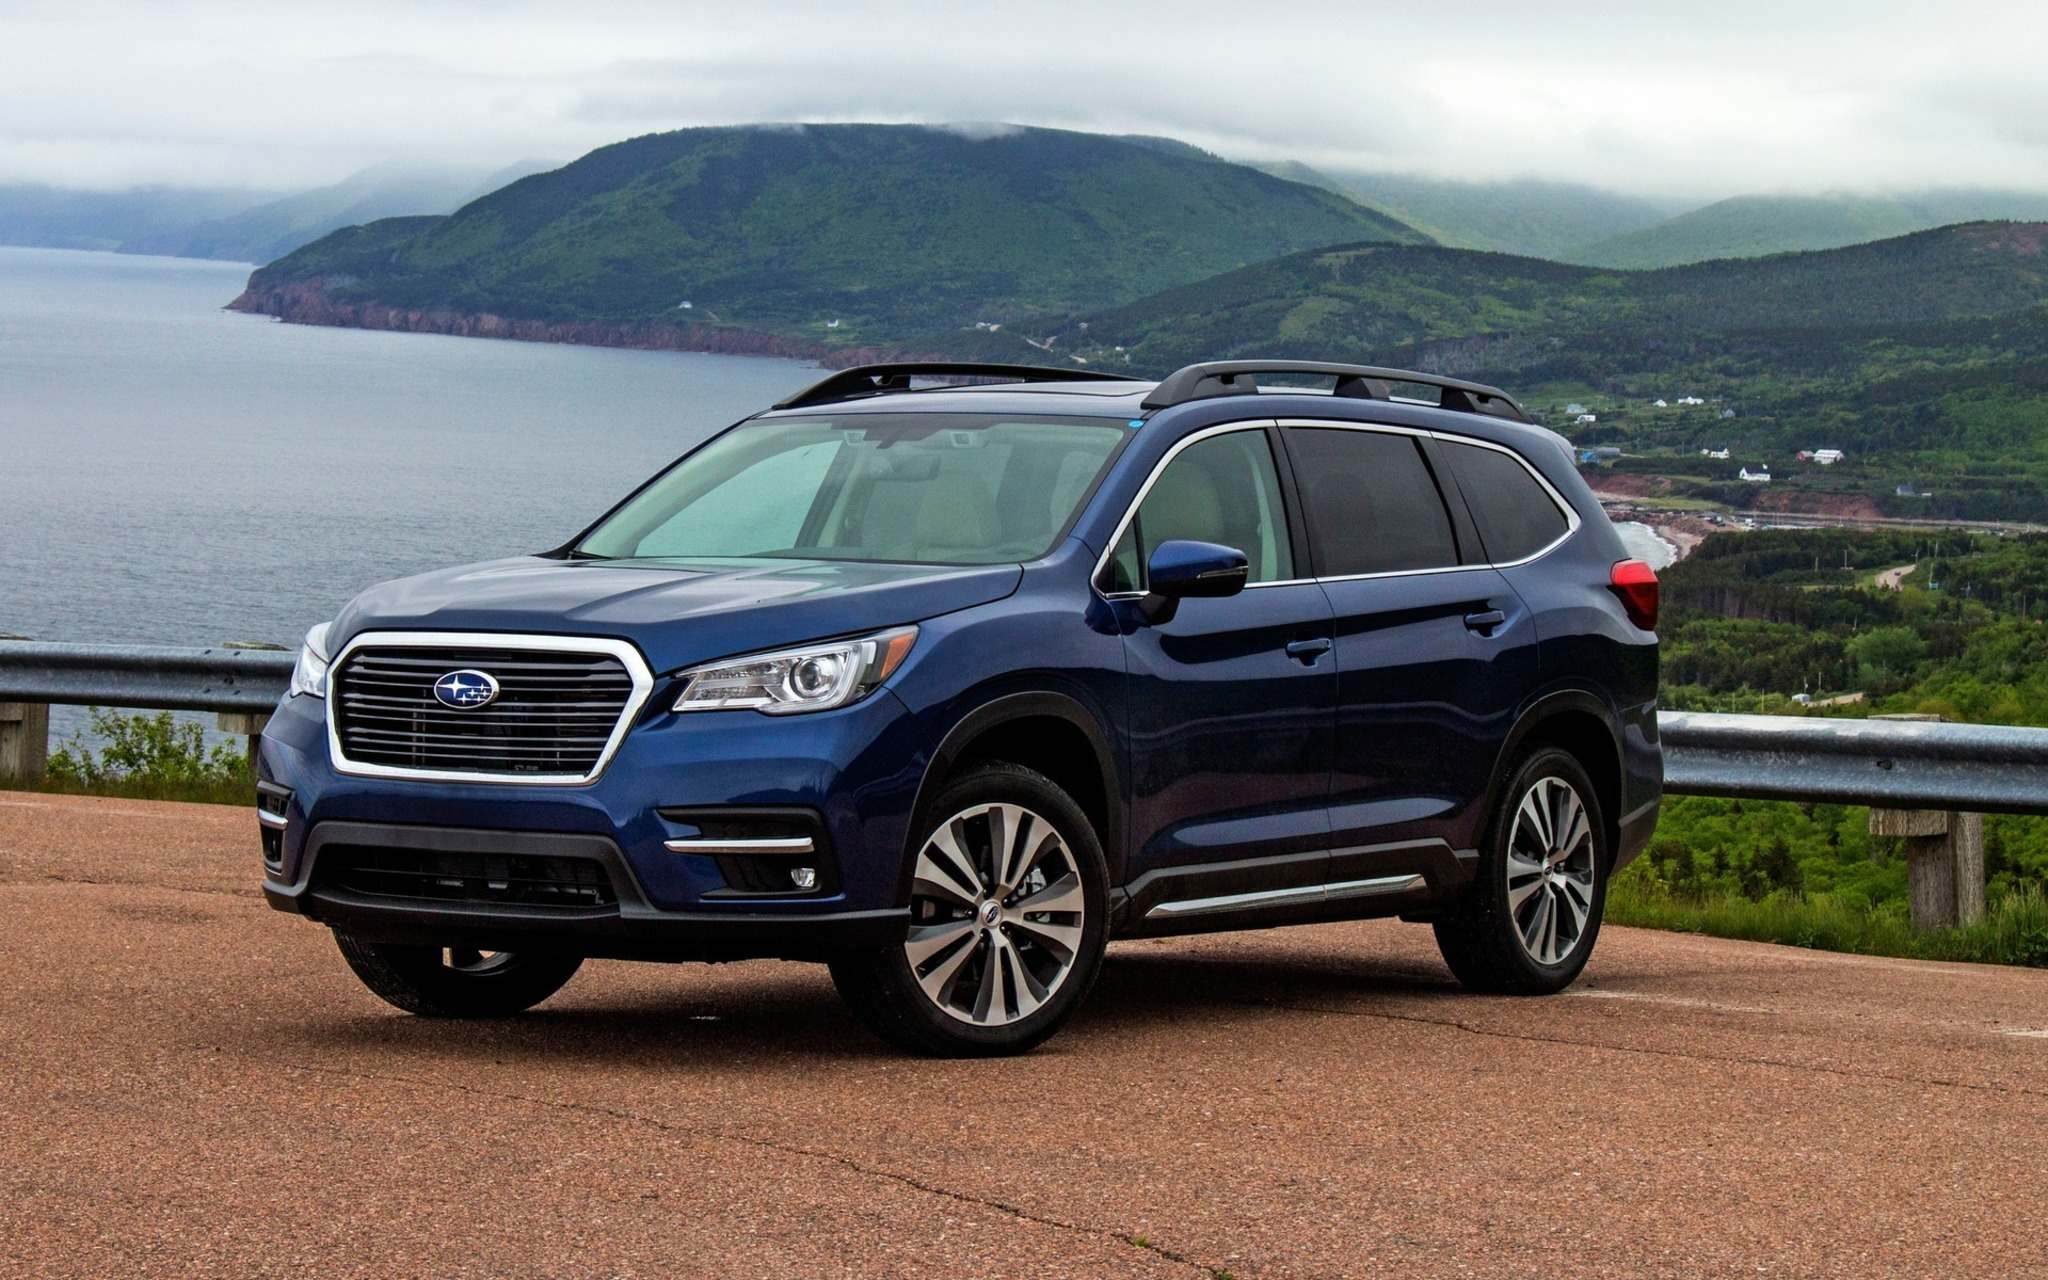 SubaruThe Subaru Ascent also finished in the top 3 of 2019 midsize SUVs.